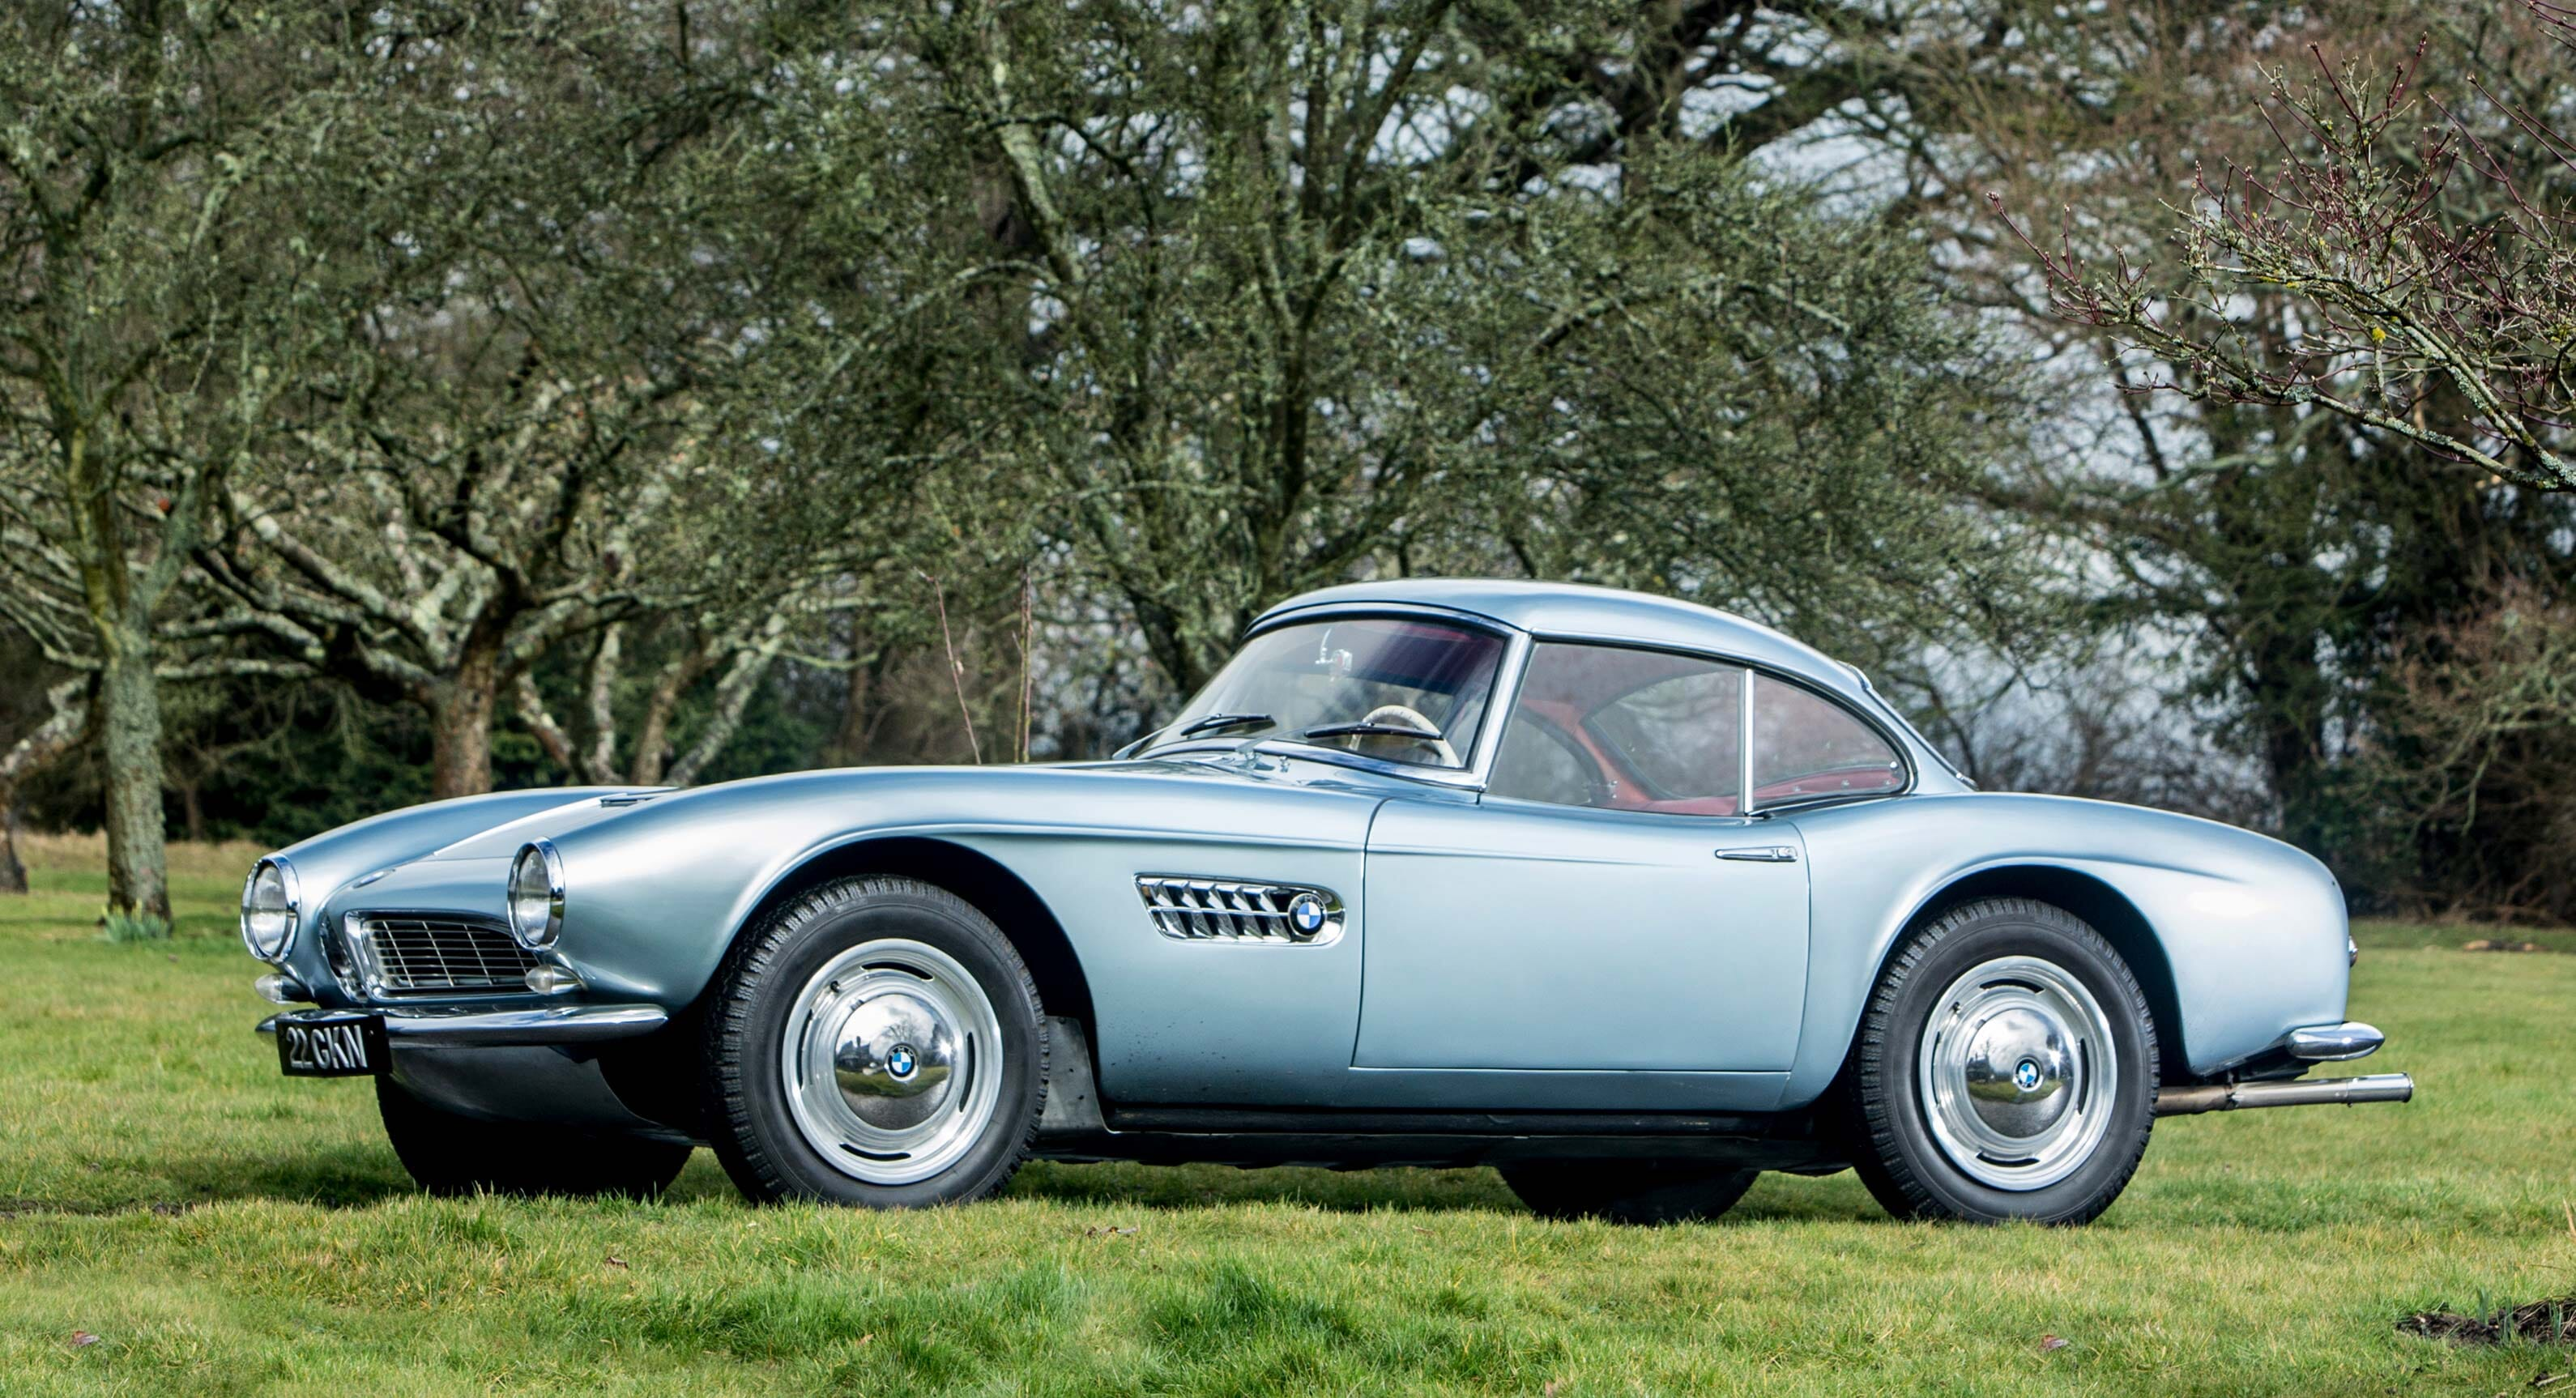 John Surtees' BMW 507 Roadster Can Be Yours For Nearly $3 Million